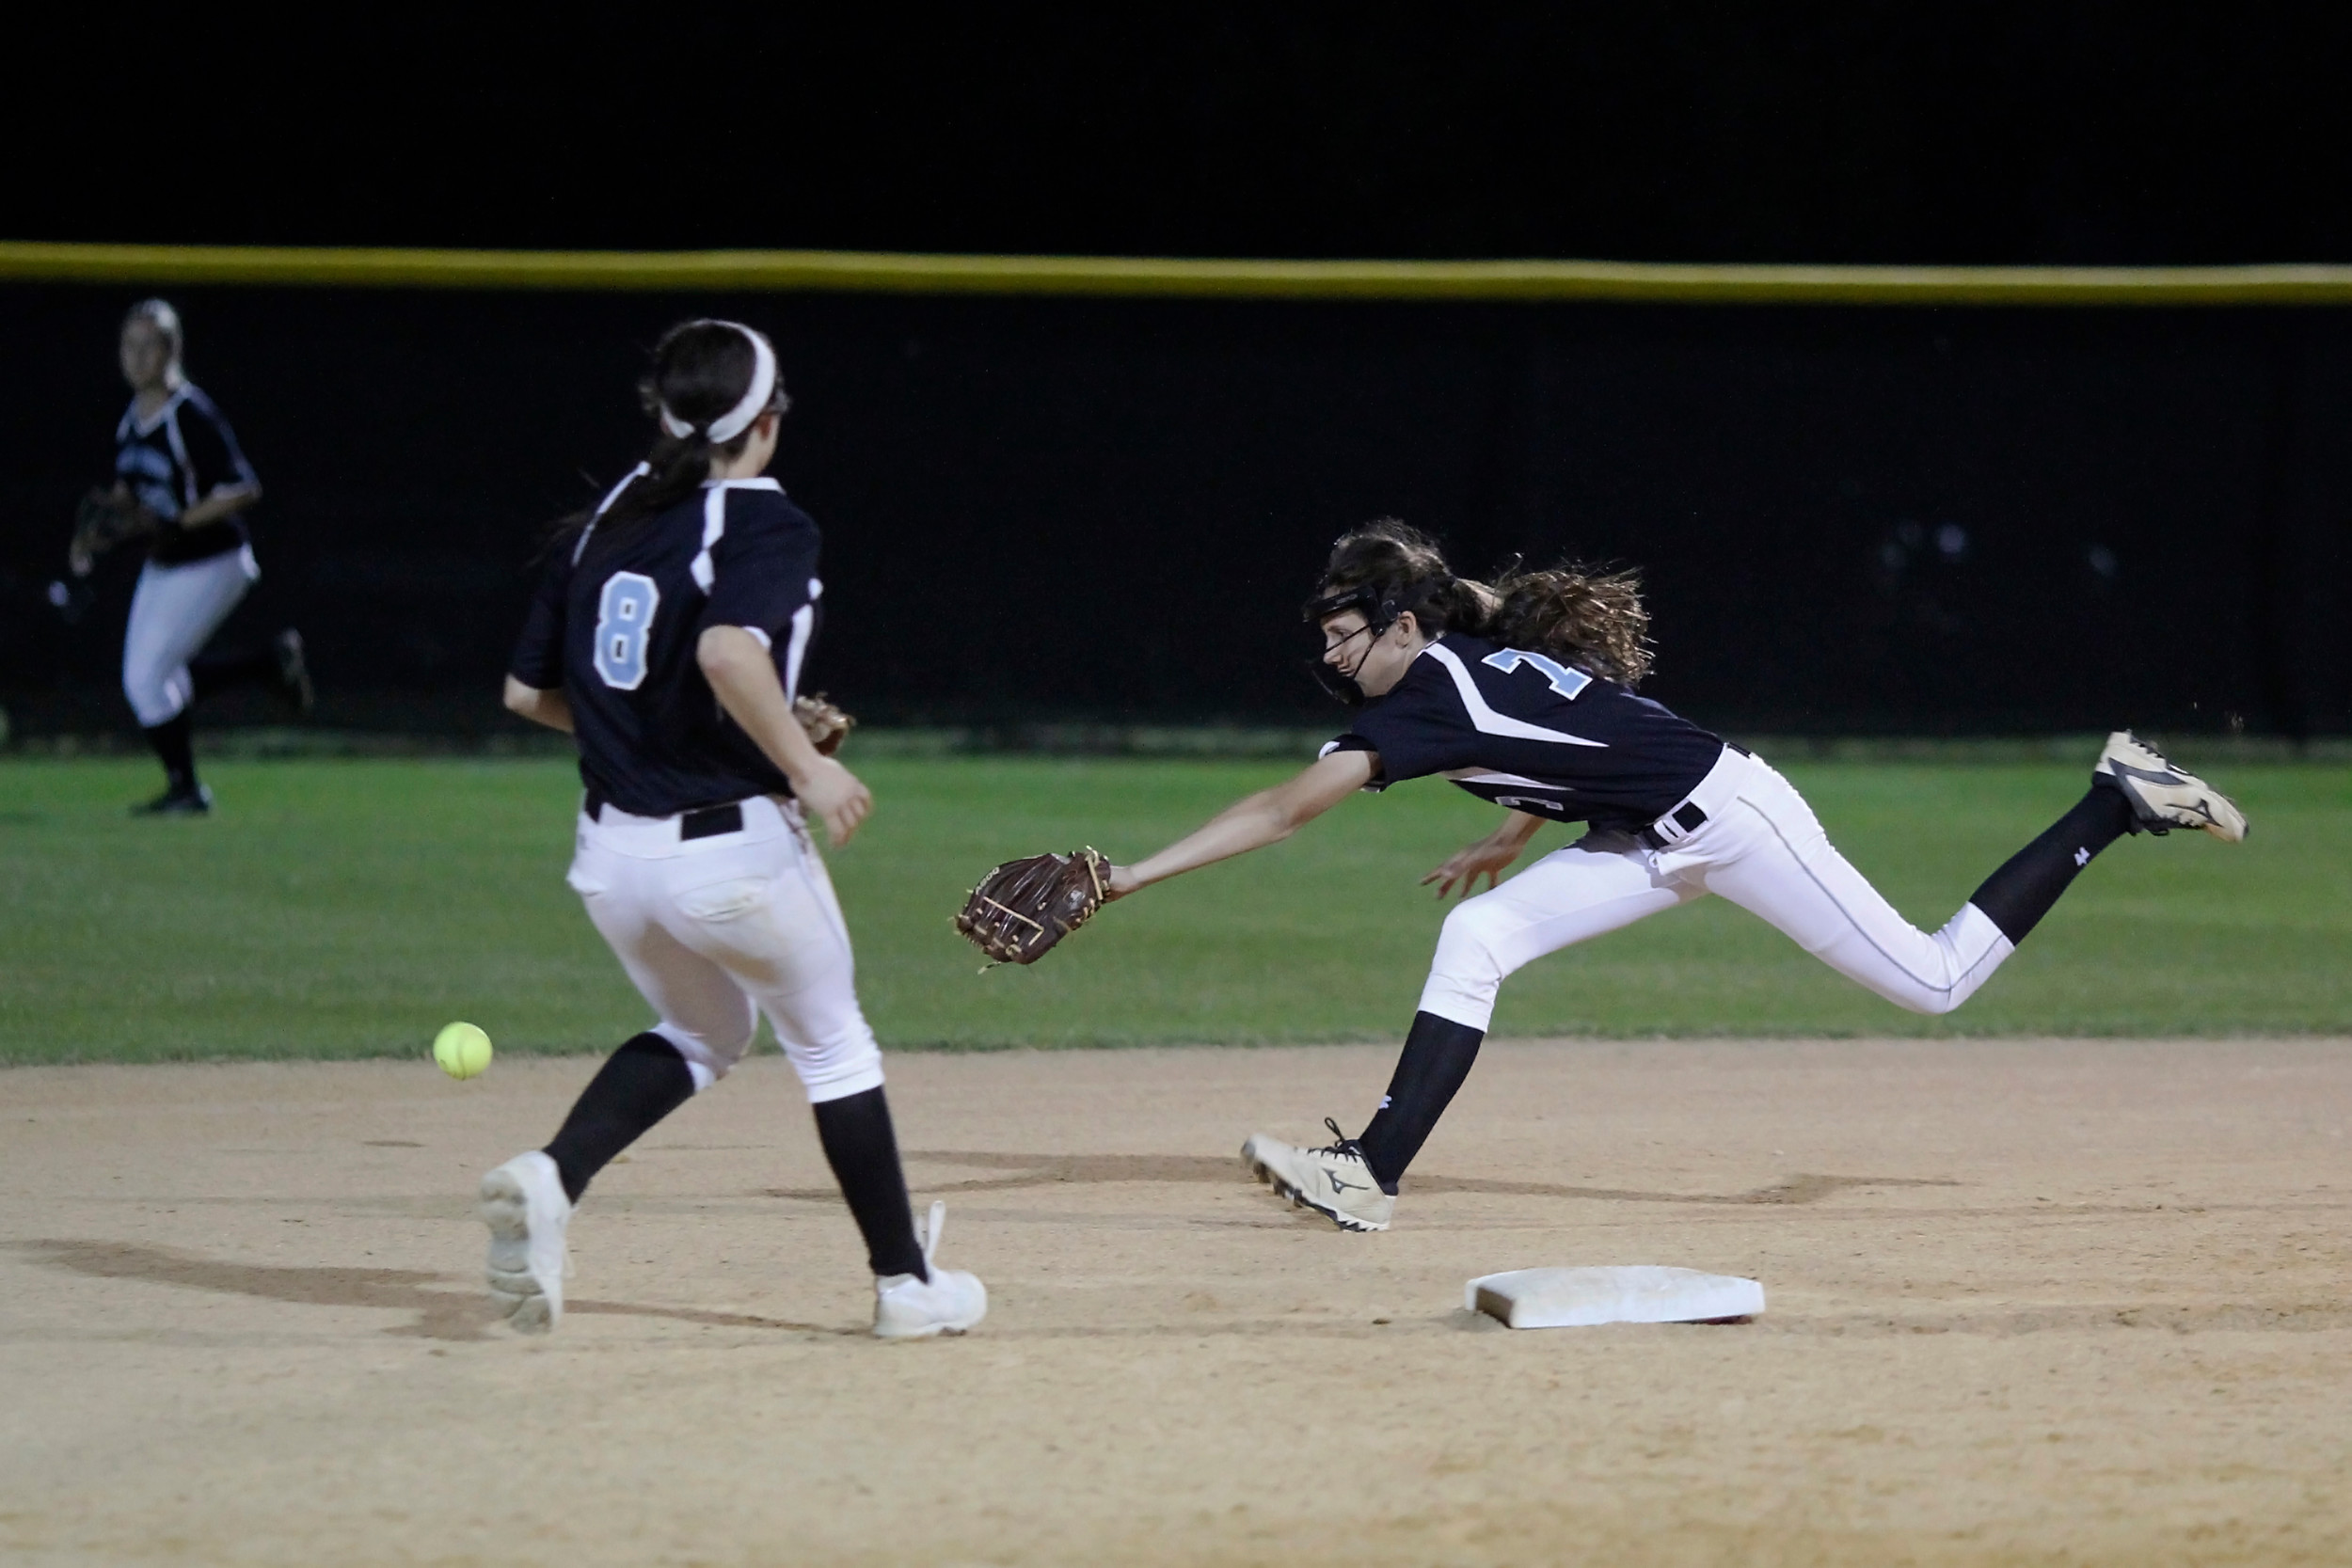 #77 Catherine Beaton makes a futile lunging attempt to field a Trinity base hit.